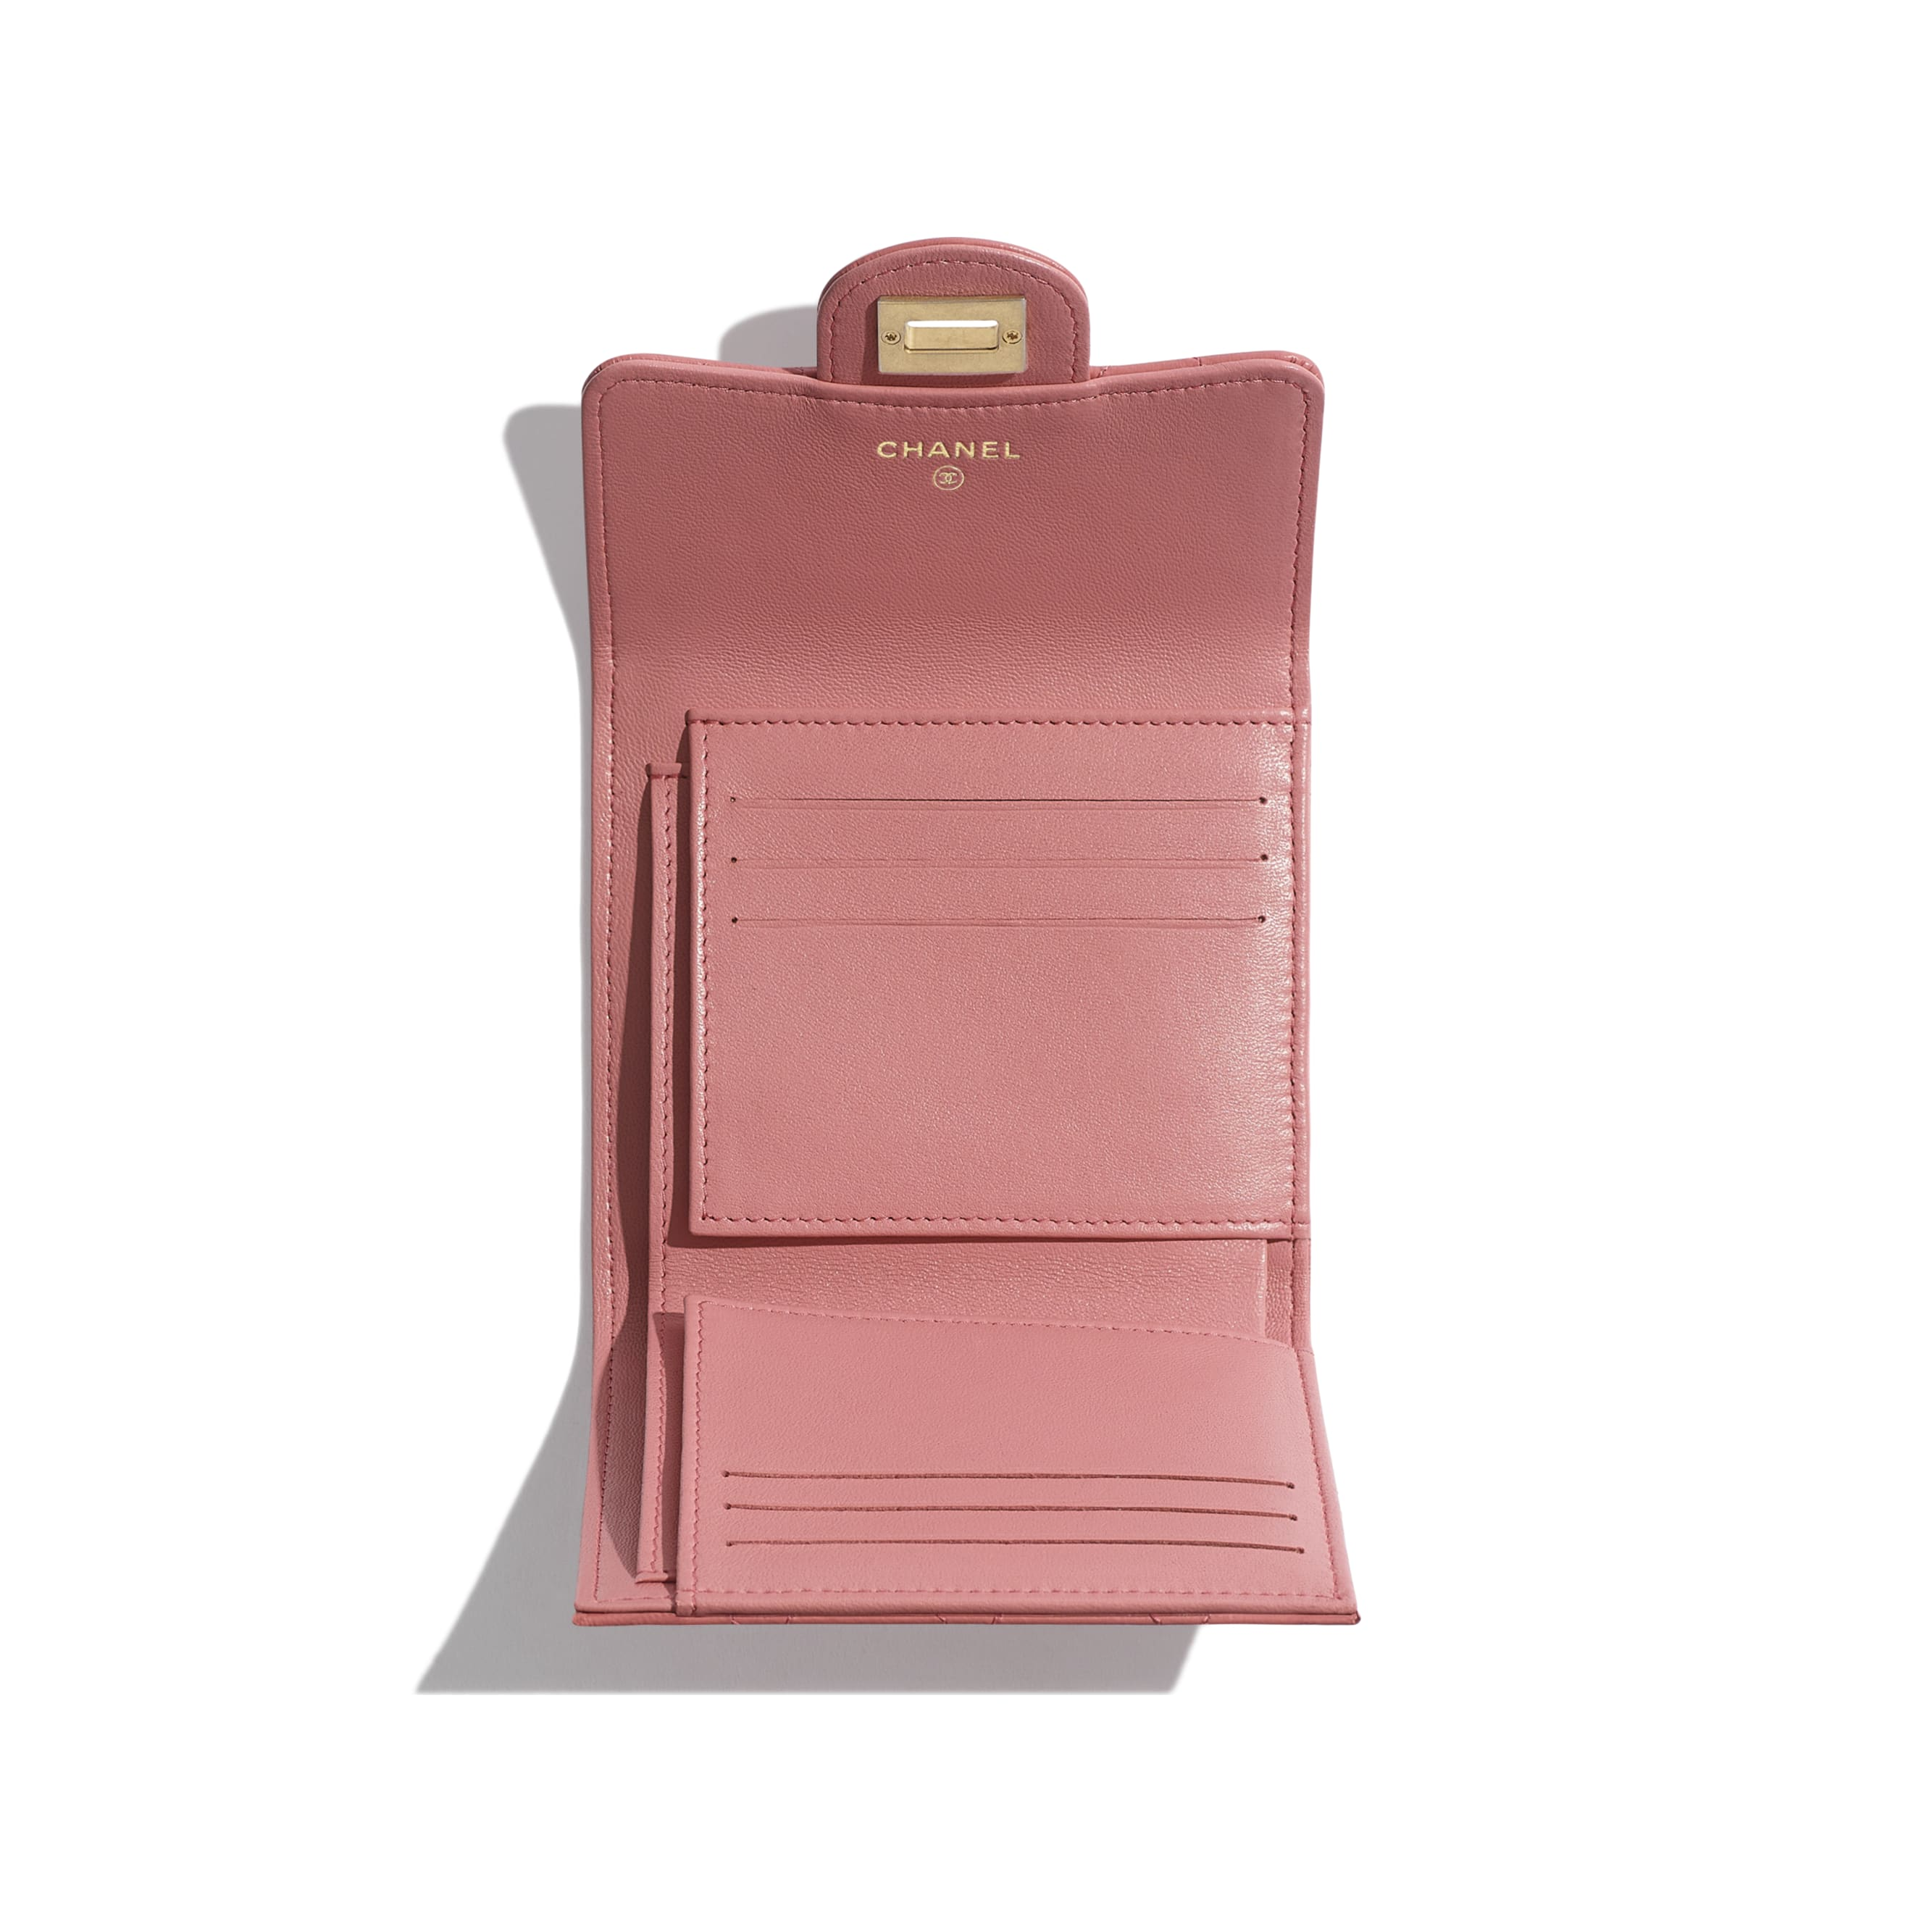 2.55 Small Flap Wallet - Pink - Aged Calfskin & Gold-Tone Metal - CHANEL - Other view - see standard sized version